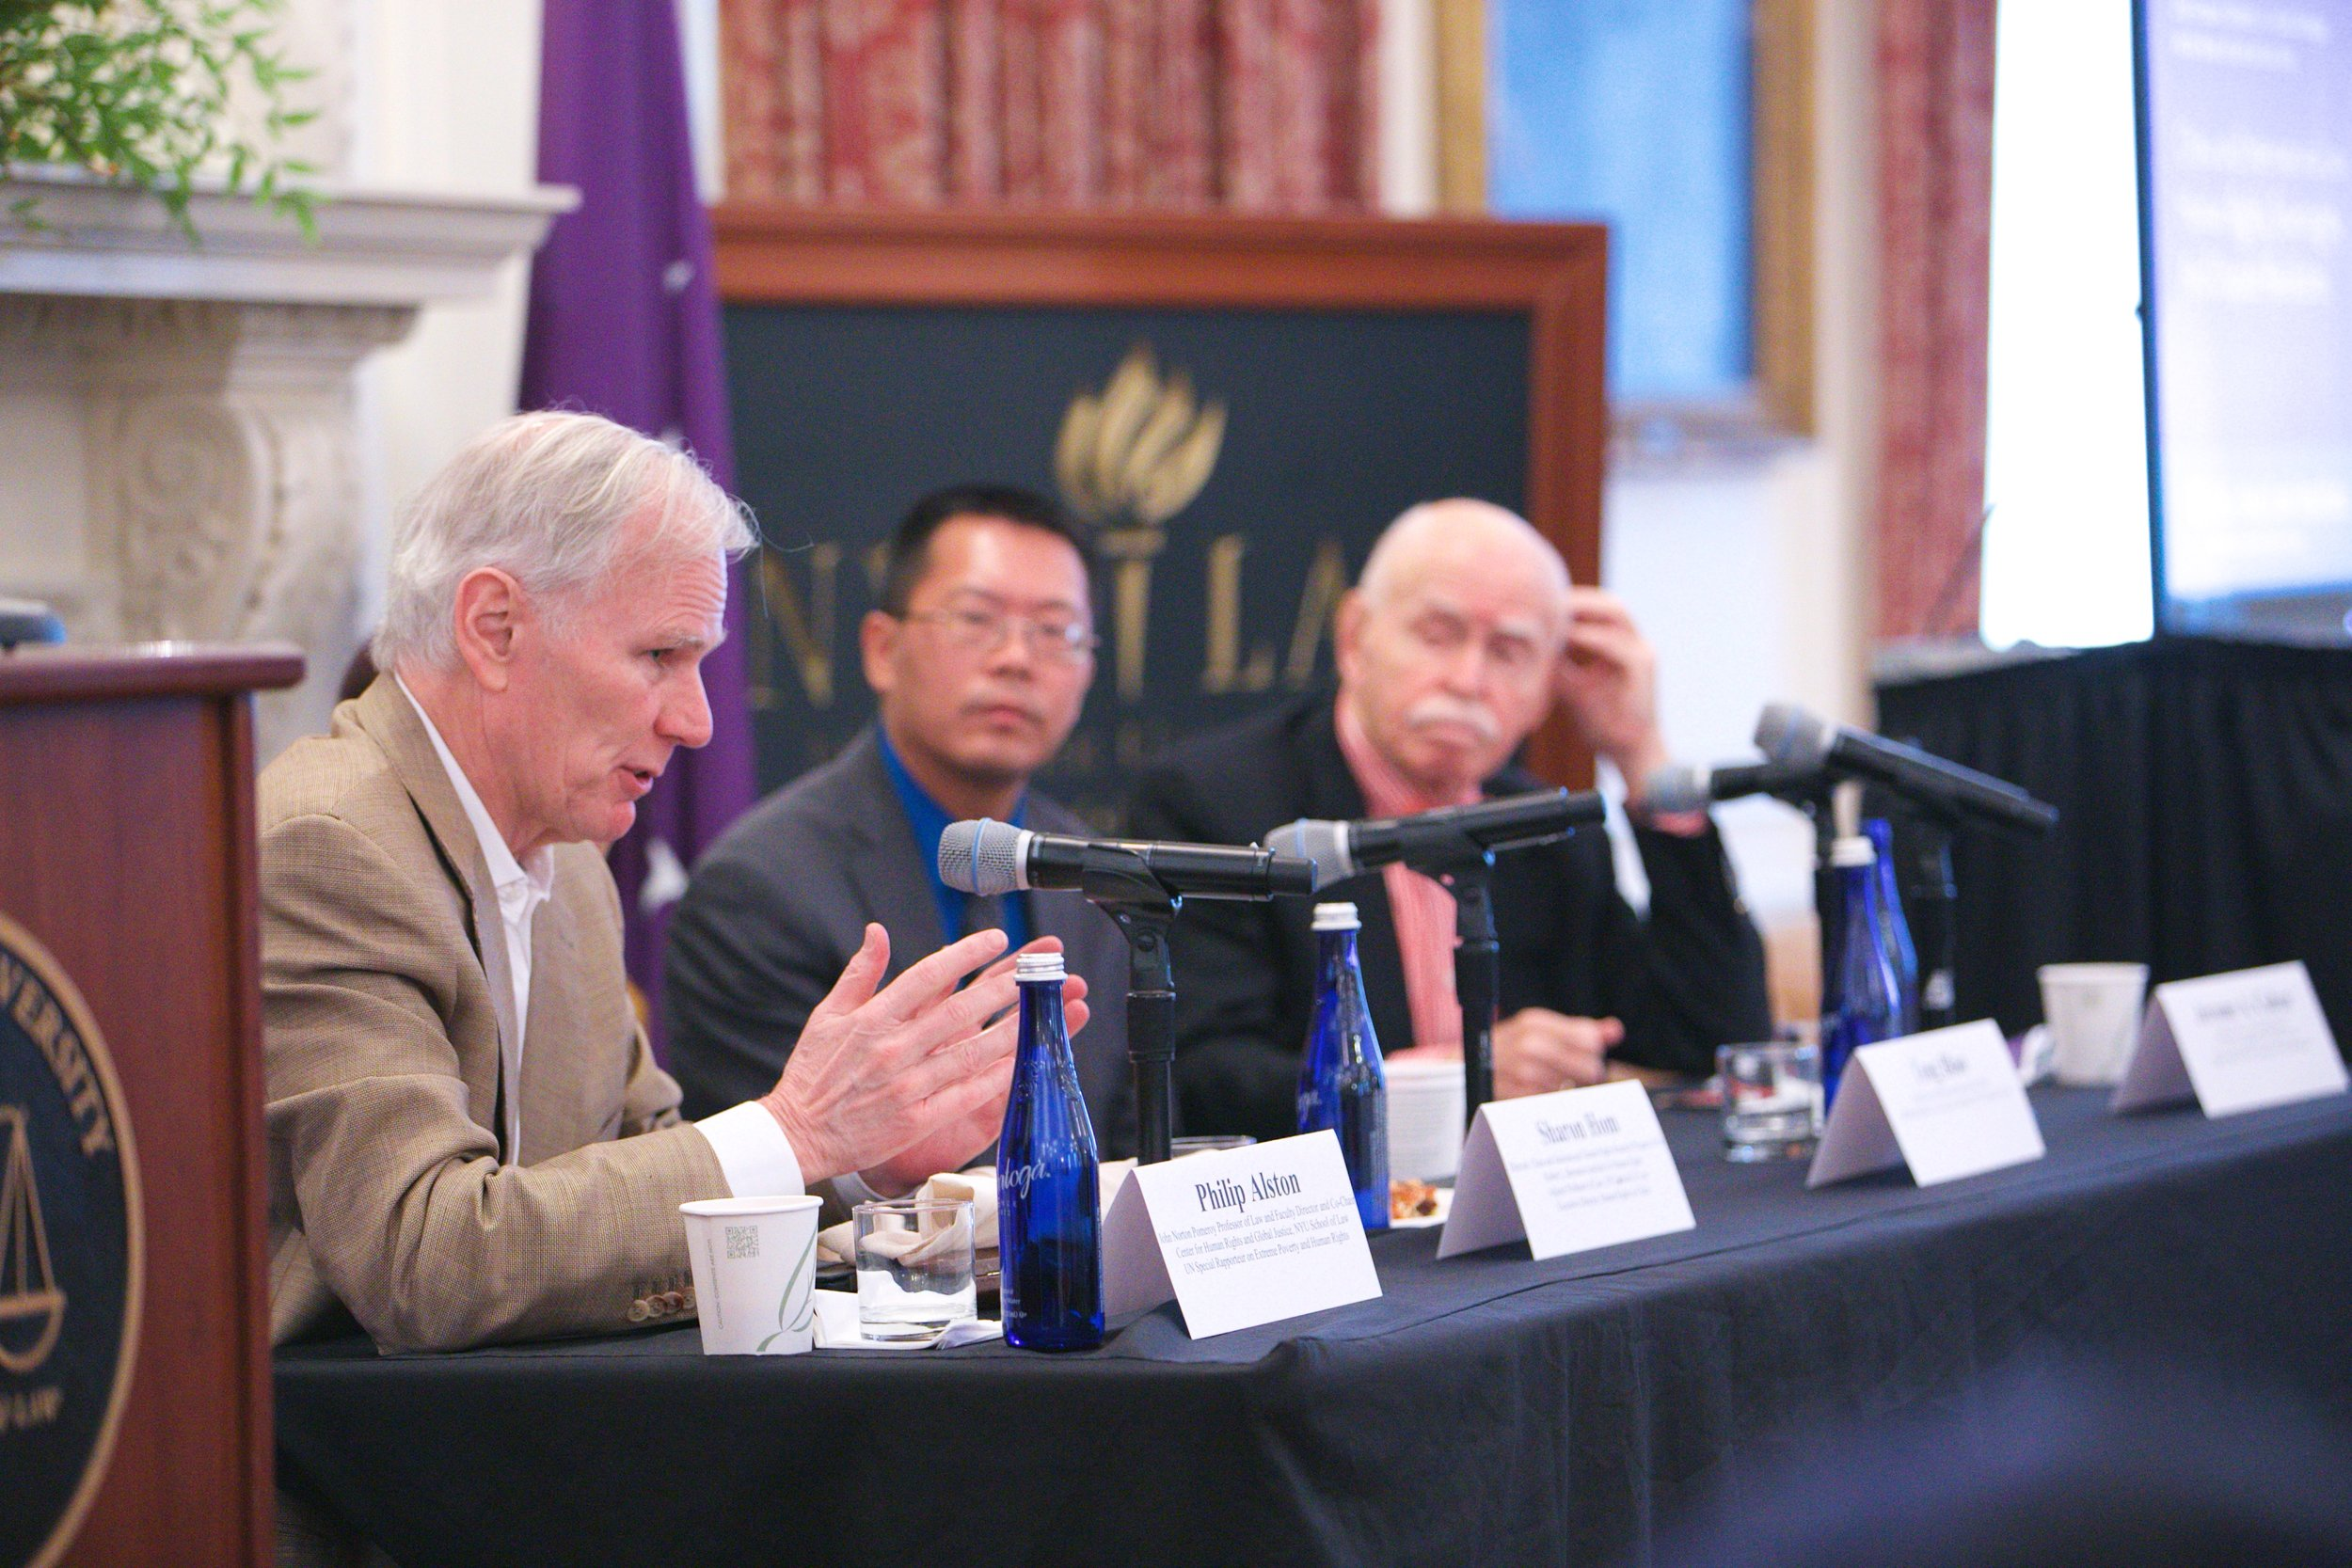 Professor Philip Alston, Lawyer Teng Biao and Professor Jerome A. Cohen